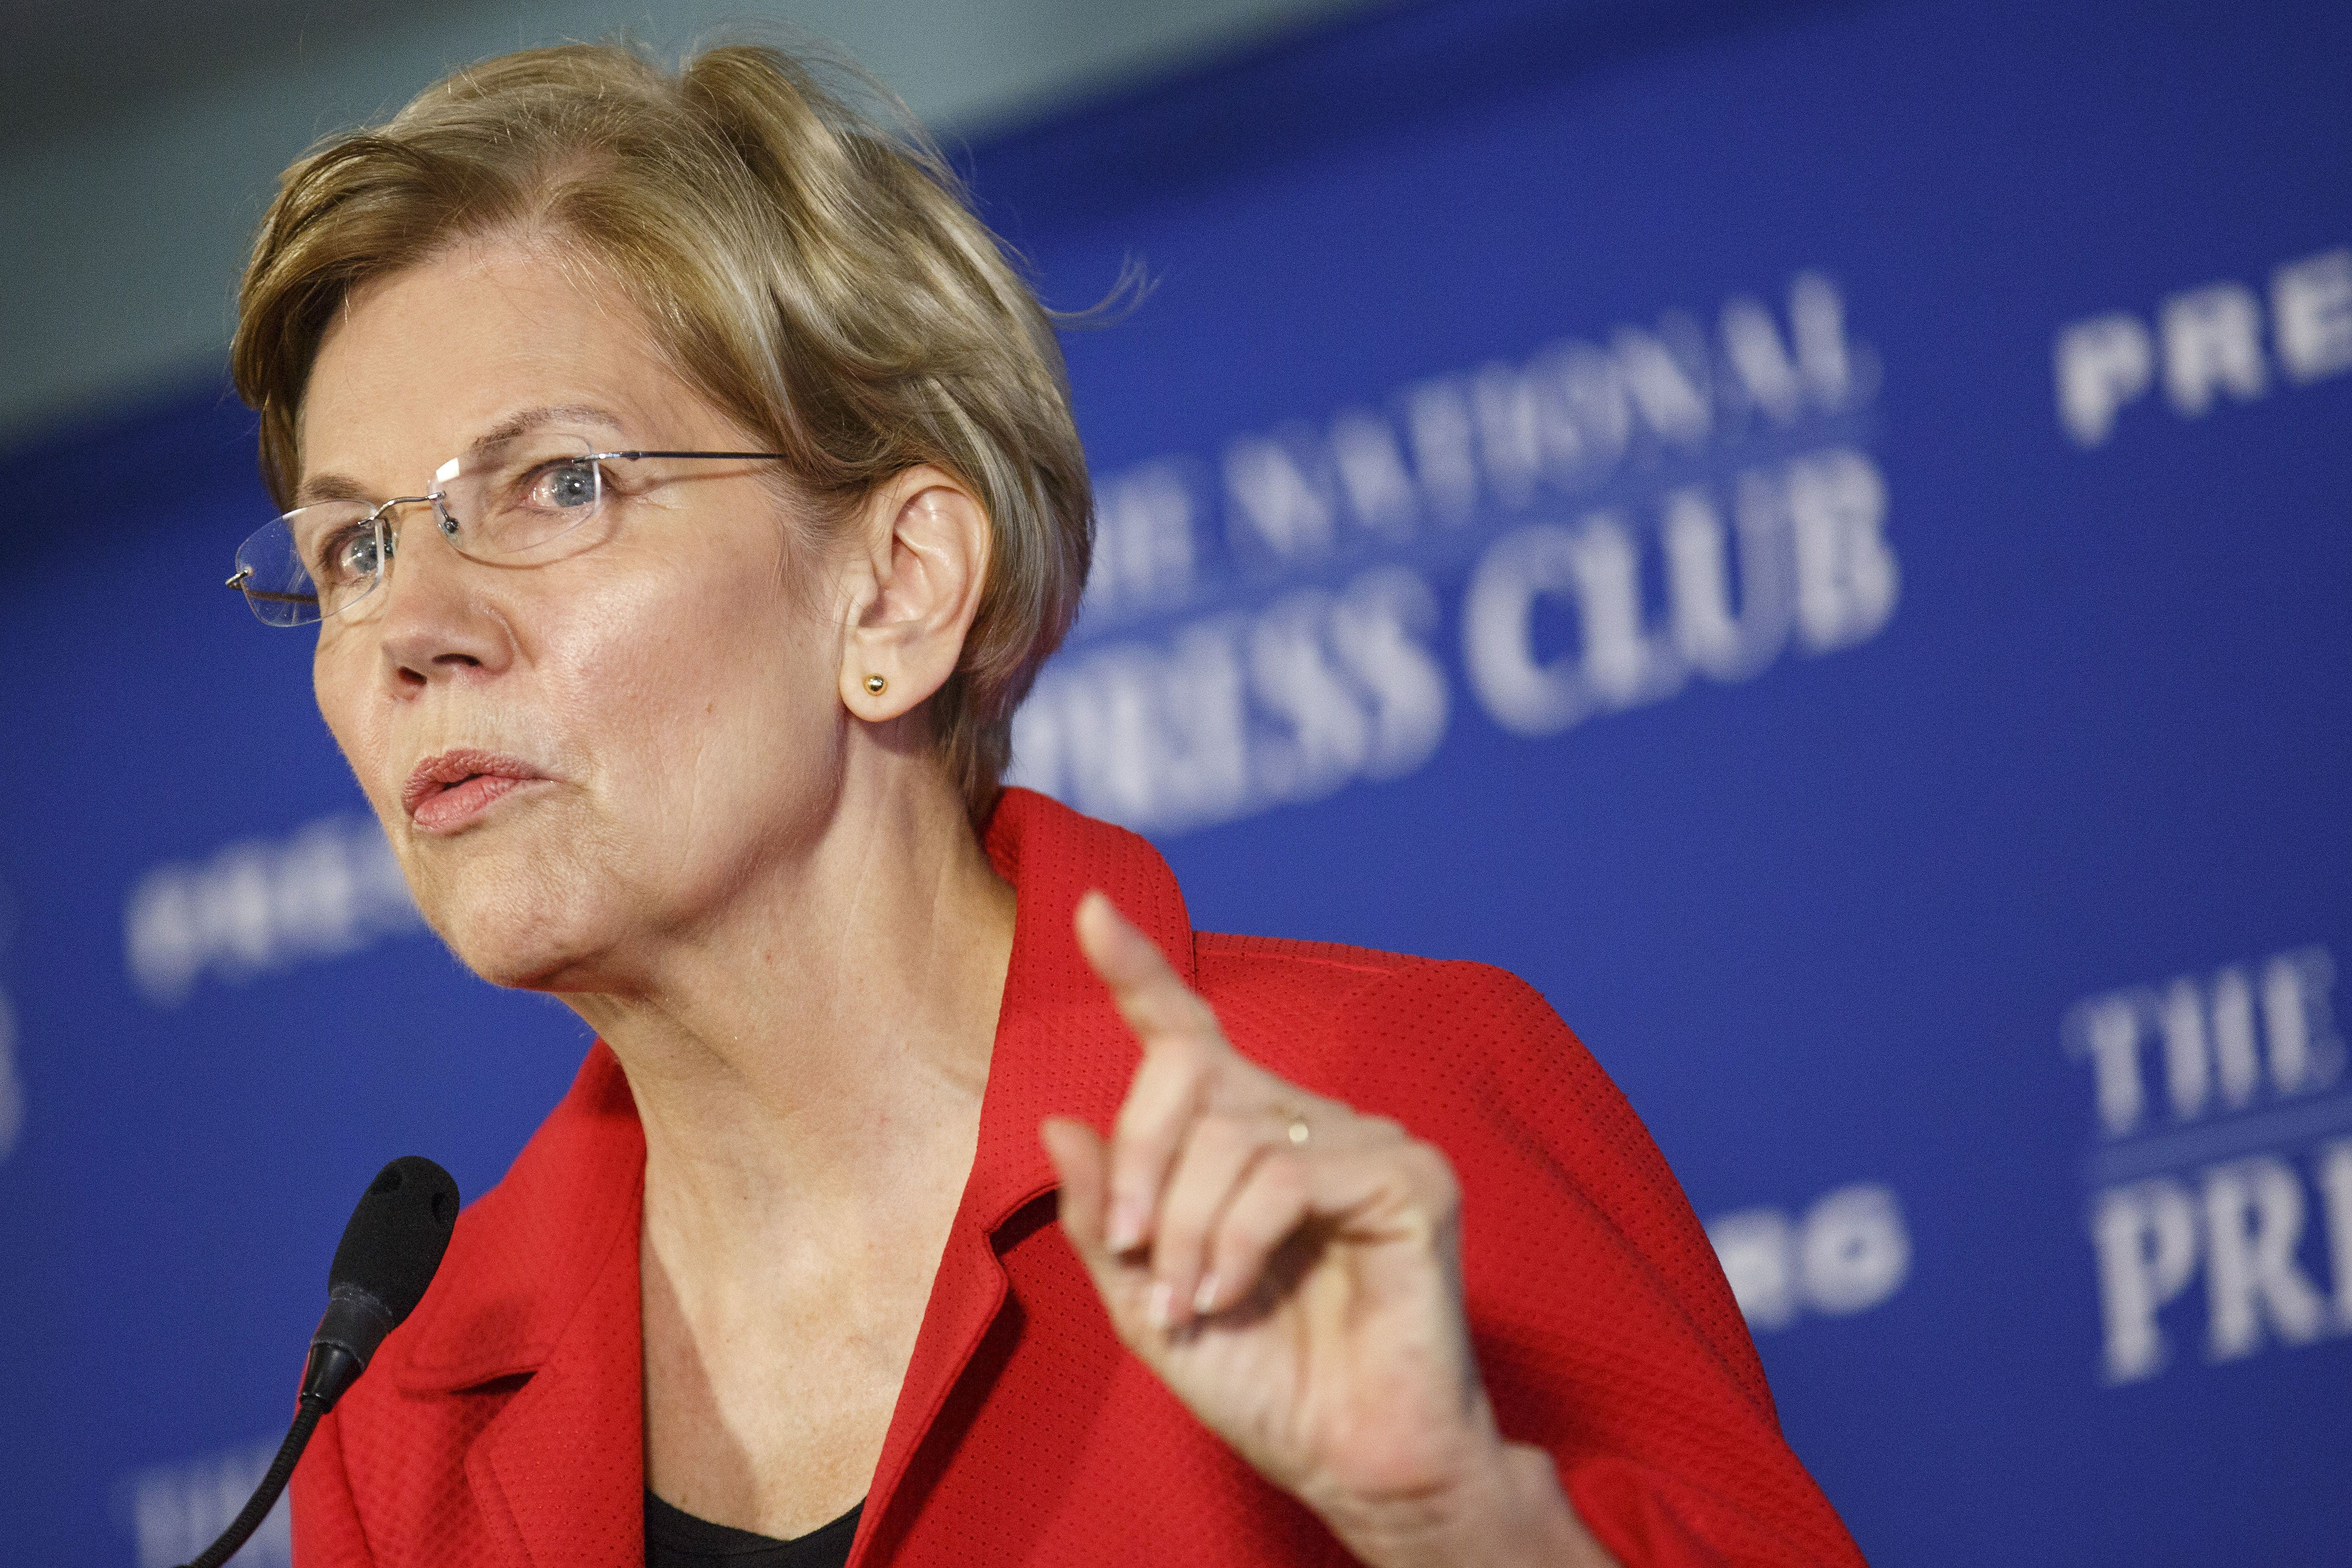 Senator Elizabeth Warren, a Democrat from Massachusetts, speaks during an event at the National Press Club in Washington, D.C., U.S., on Tuesday, Aug. 21, 2018. Declaring that big money has created a culture of corruption that colors virtually every important decision in Washington, Warren proposed a sweeping package of restrictions that would create a sea-change in the way the nation's capital operates. Photographer: Joshua Roberts/Bloomberg via Getty Images